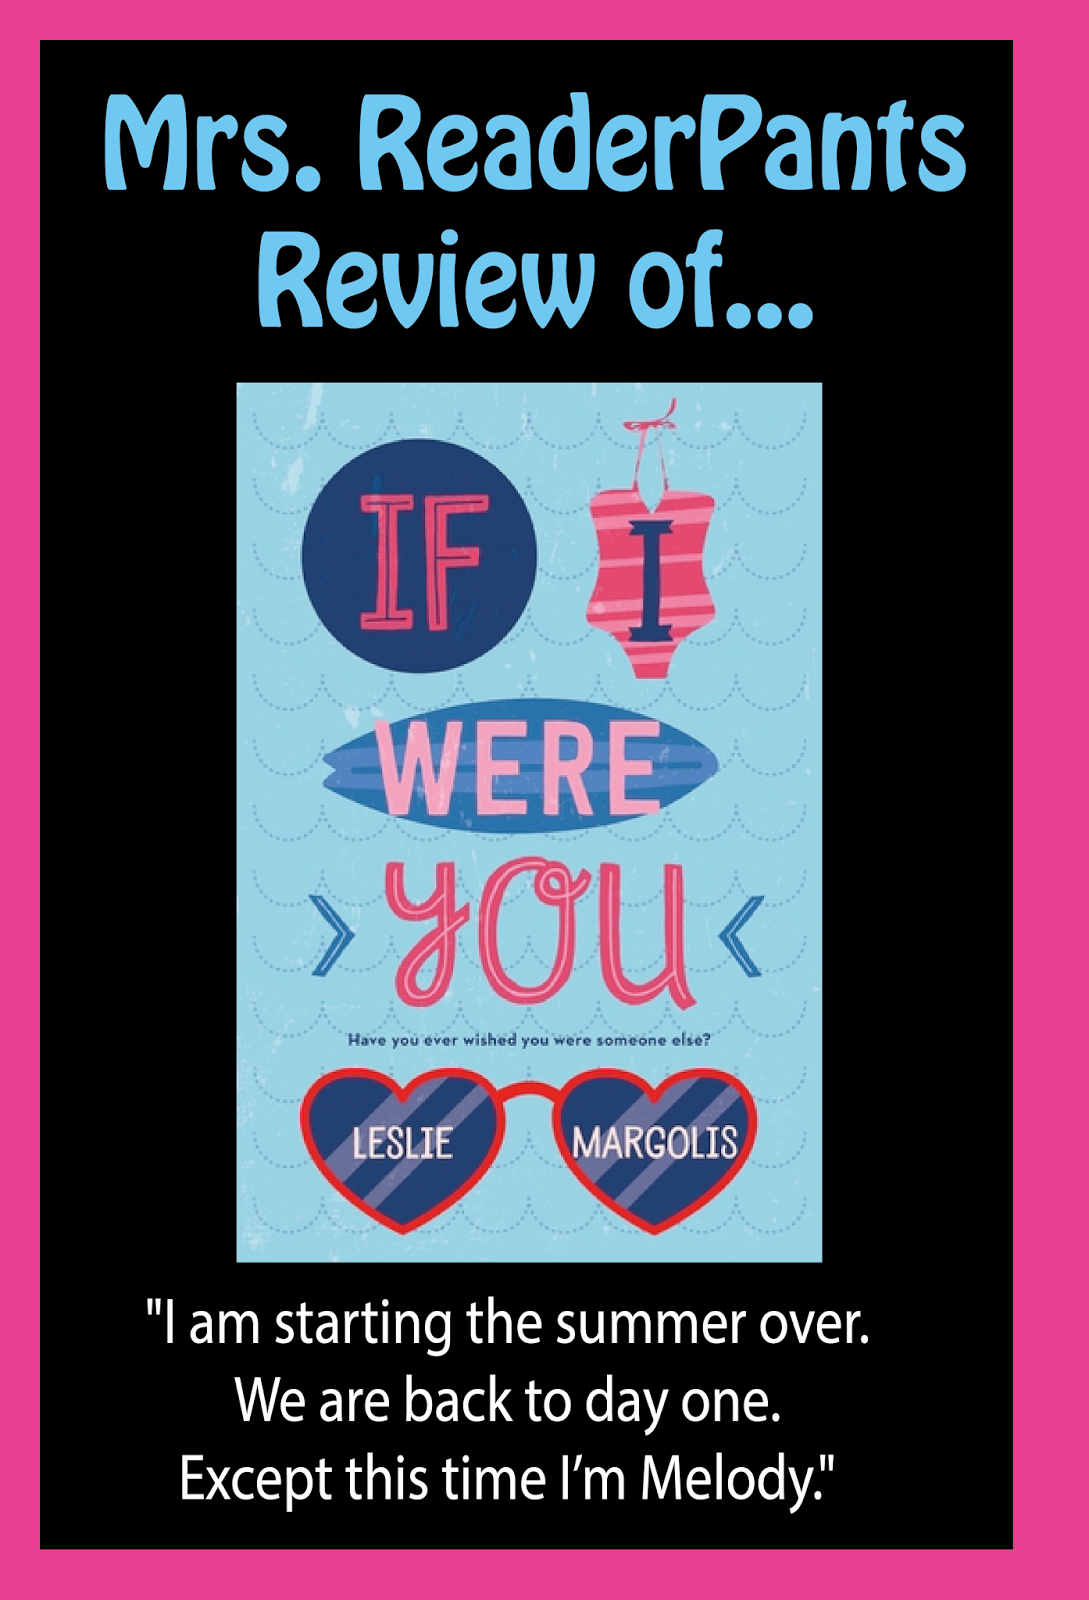 Mrs Readerpants Review If I Were You (margolis